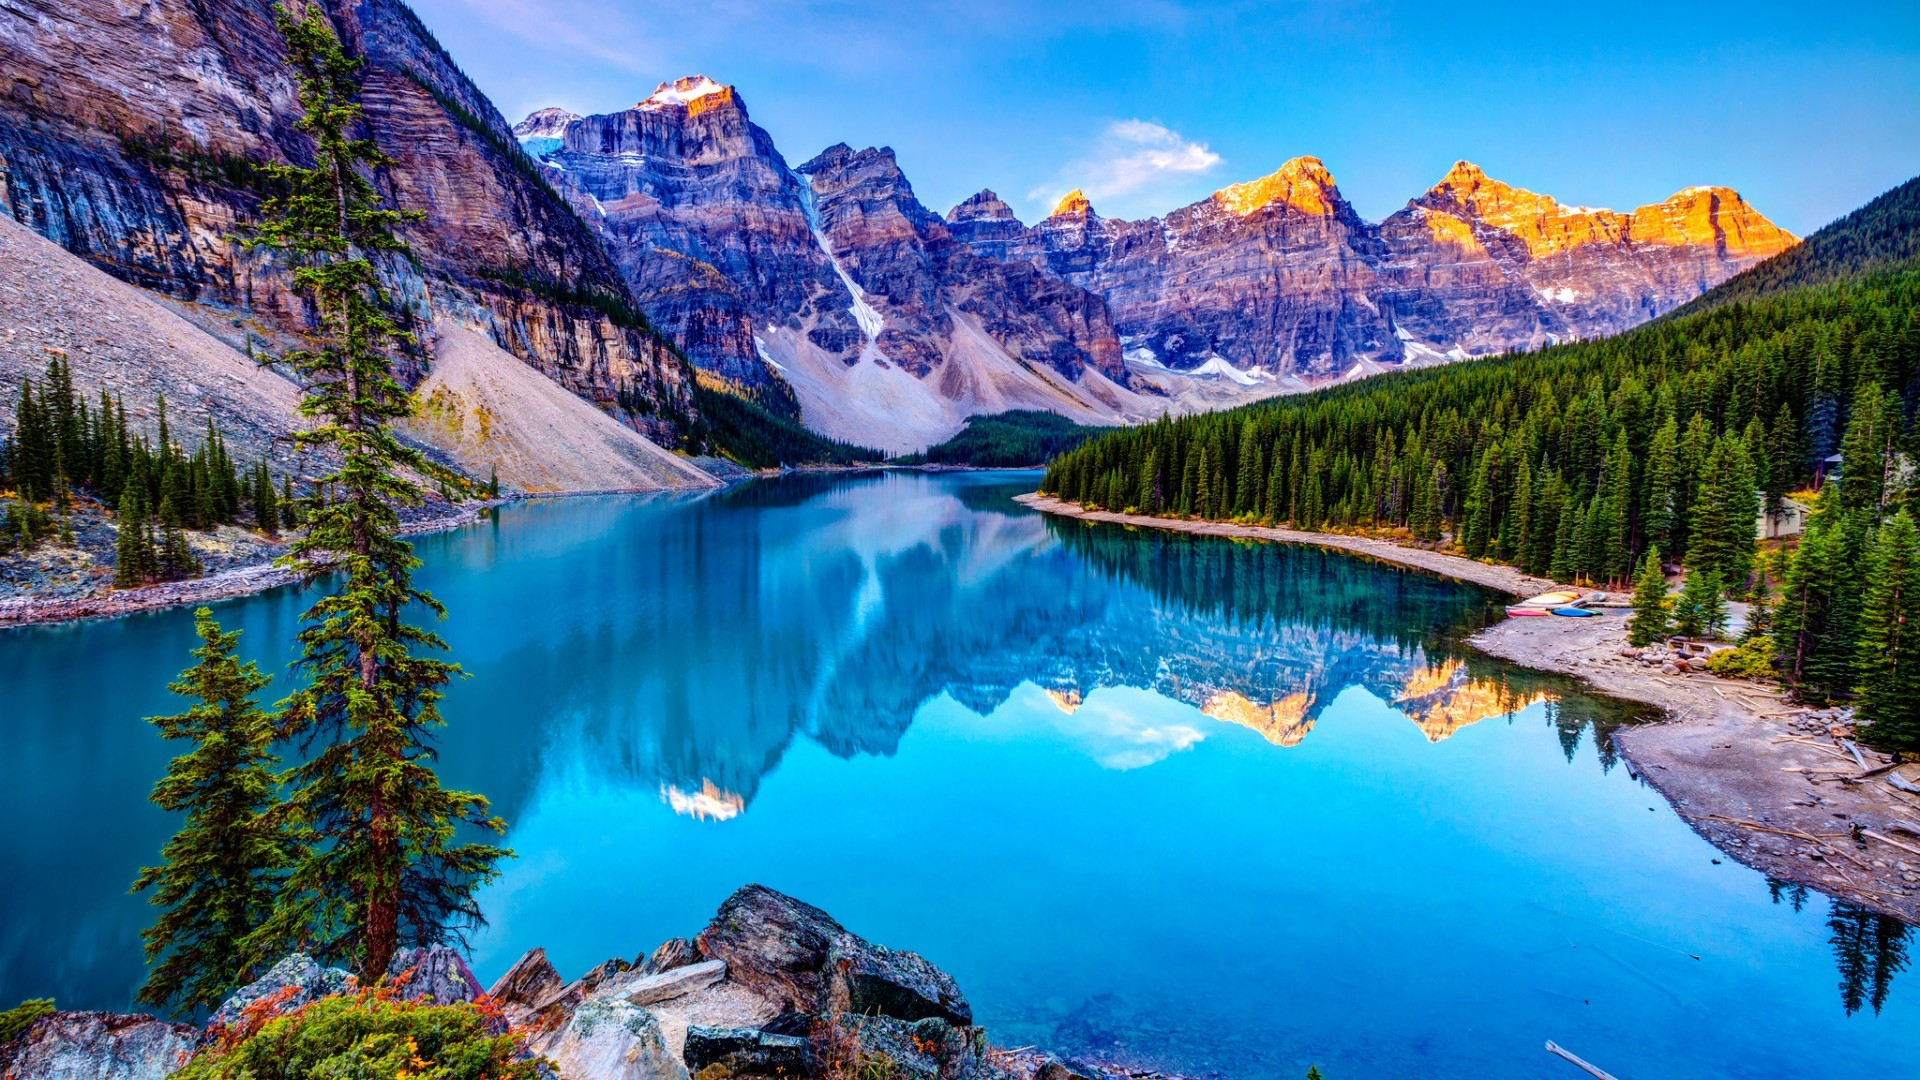 Download Best Beautiful Nature Photography Hd Background Jpg Wallpapers Images Free Latestwall